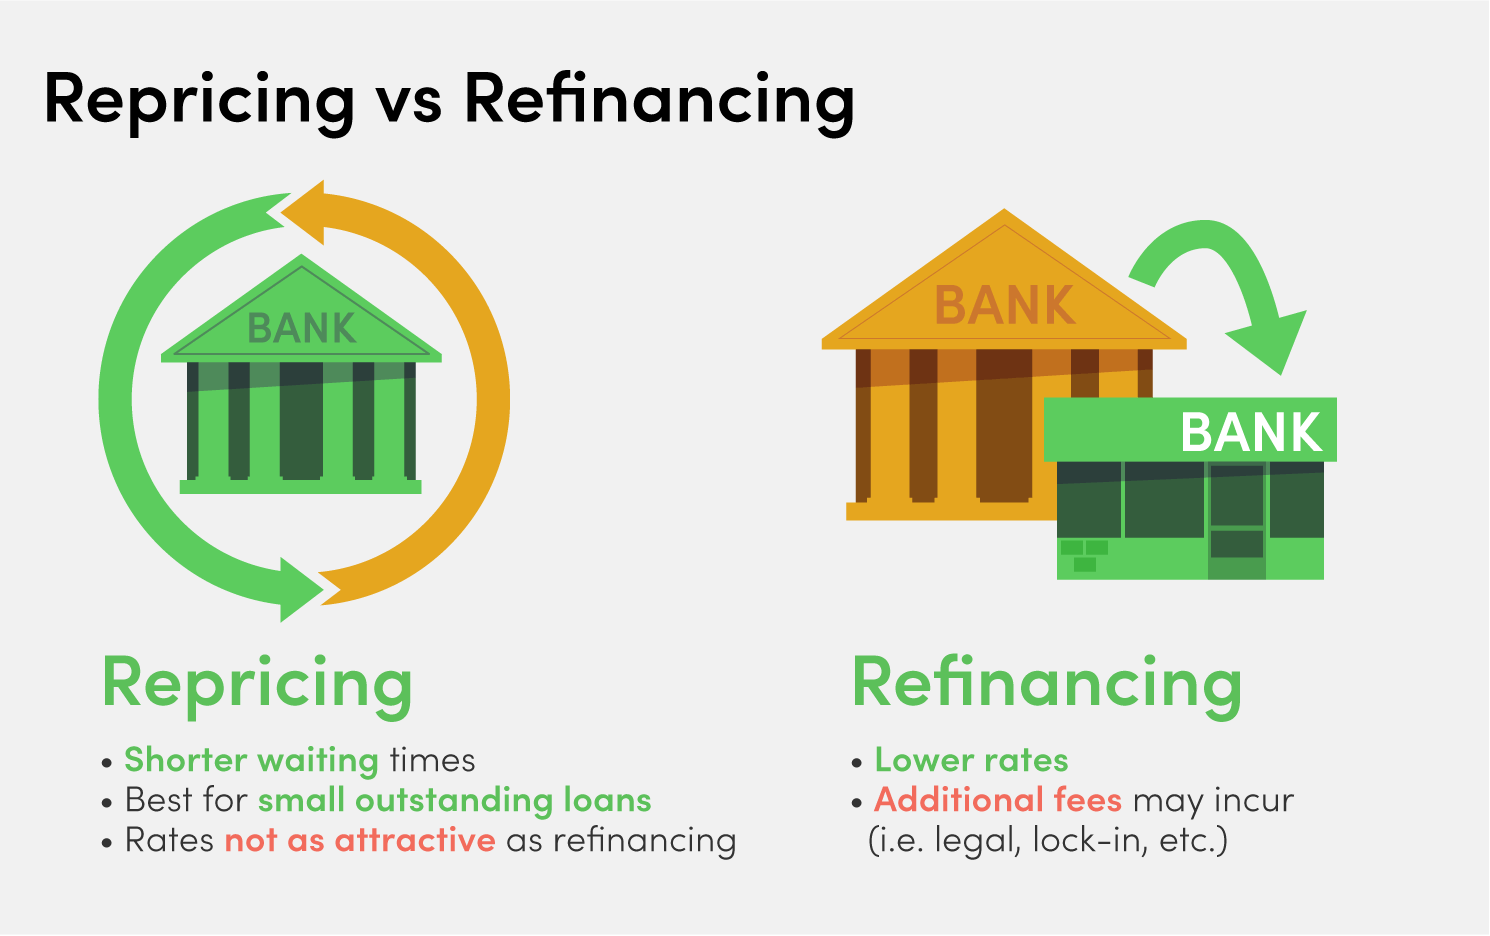 refinancing vs repricing singapore